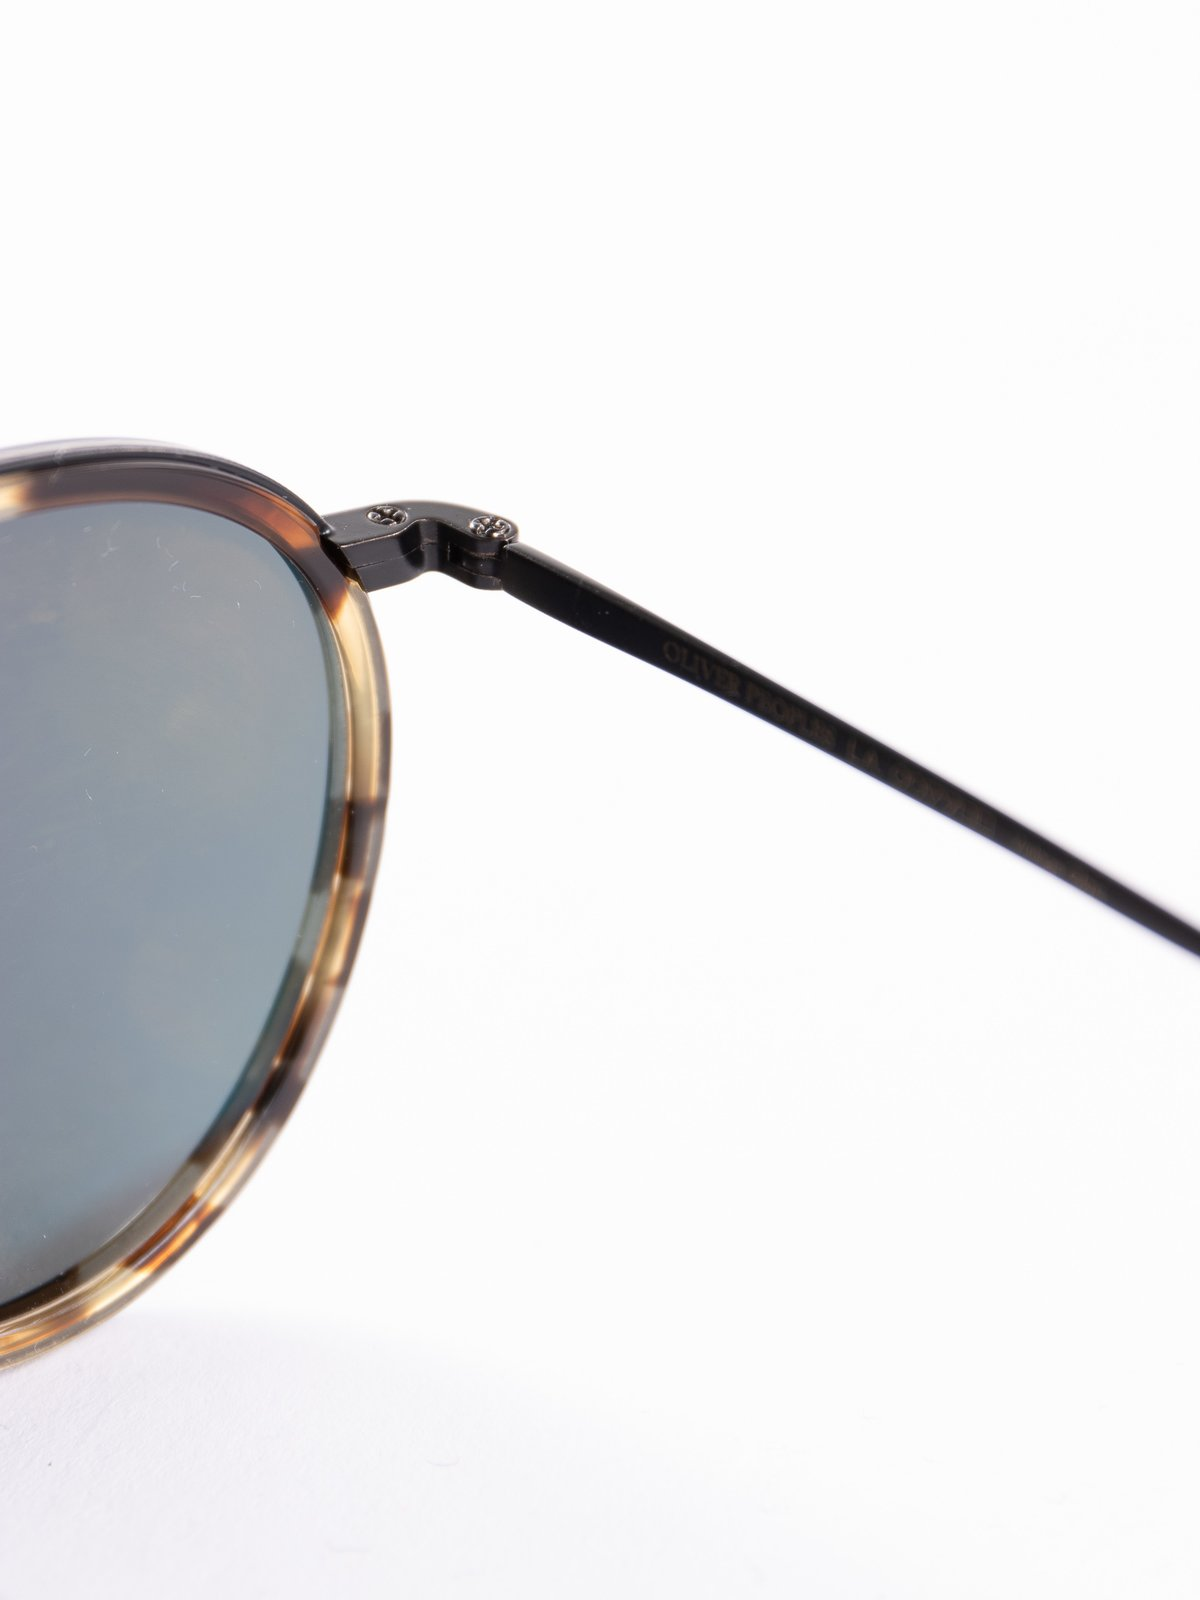 Hickory Tortoise–Matte Black/Dark Grey Mirror Gold MP–2 Sunglasses - Image 4